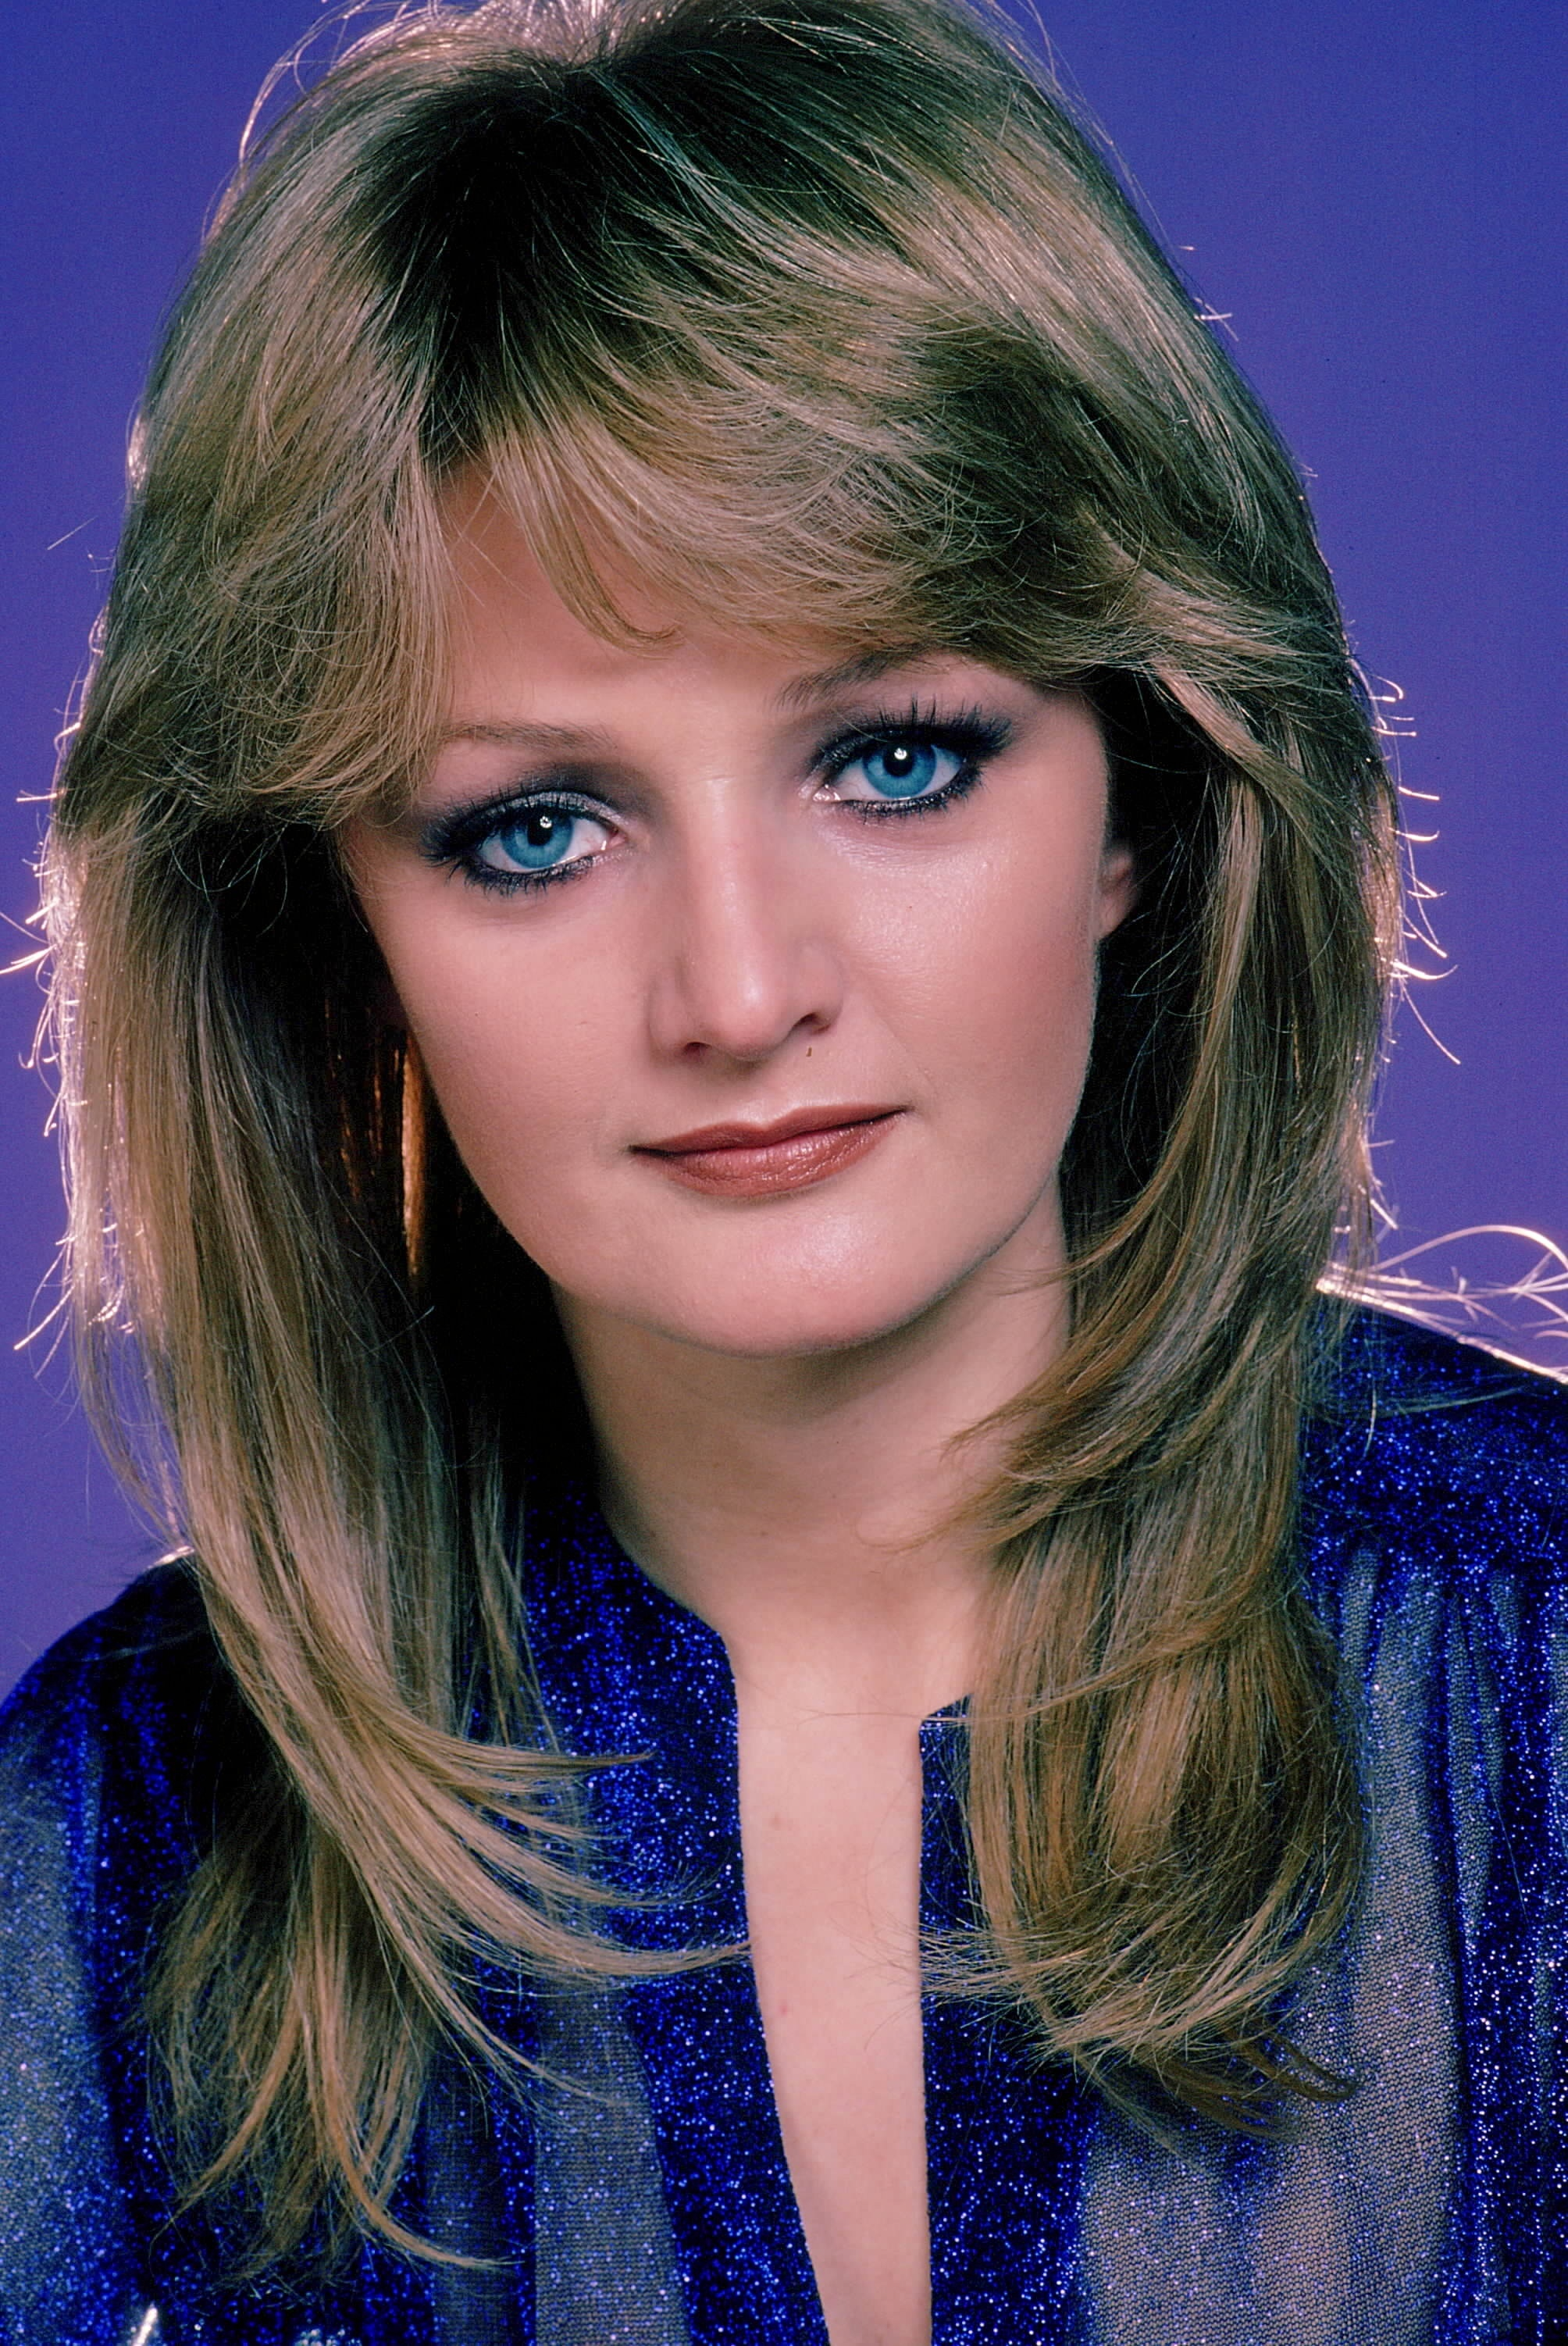 Bonnie Tyler Images Bonnie Tyler 1979 Hd Wallpaper And